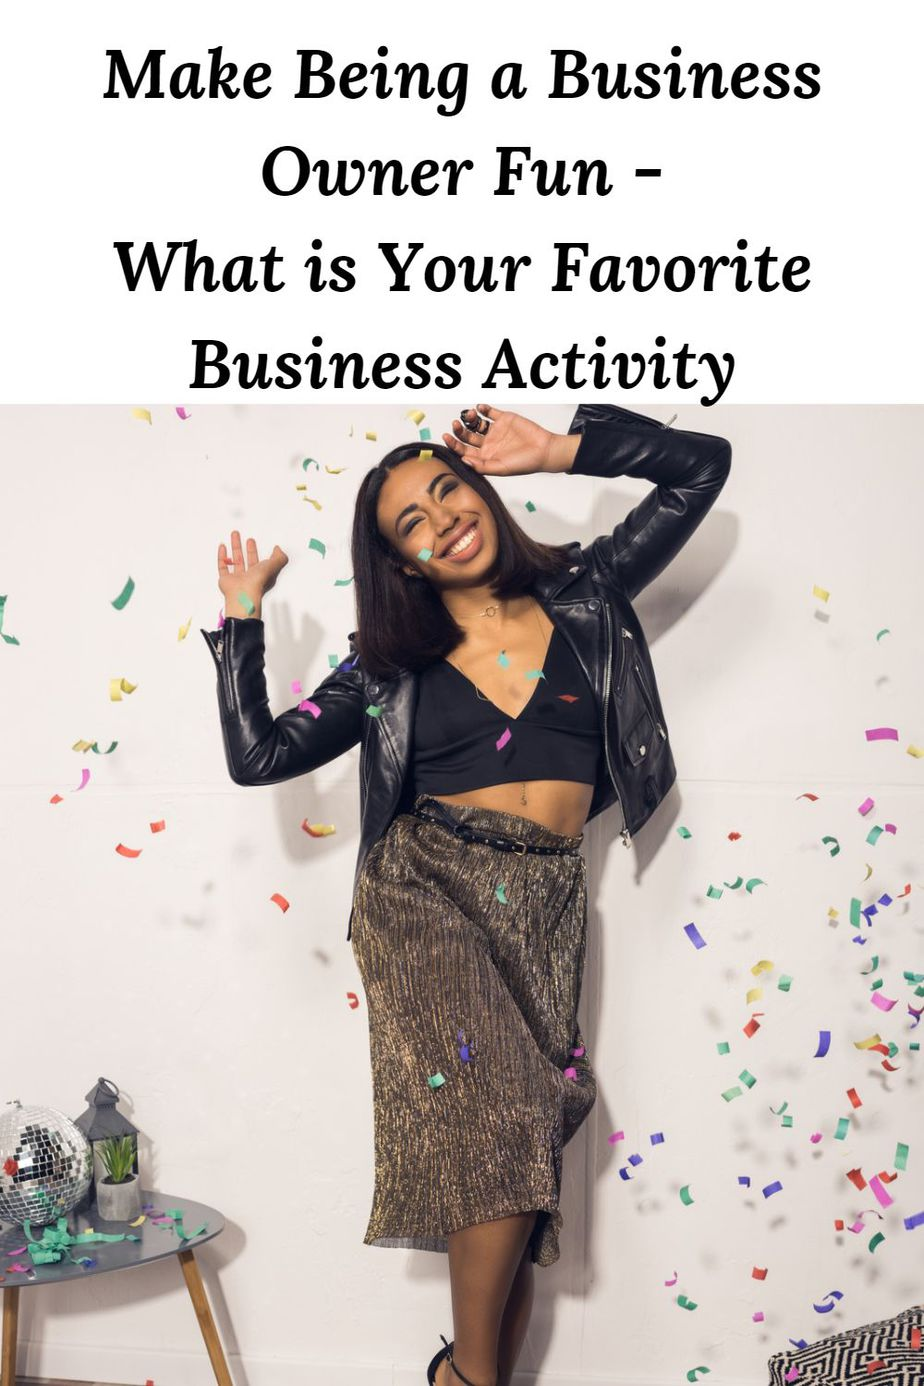 Make Being a Business Owner Fun -What is Your Favorite Business Activity